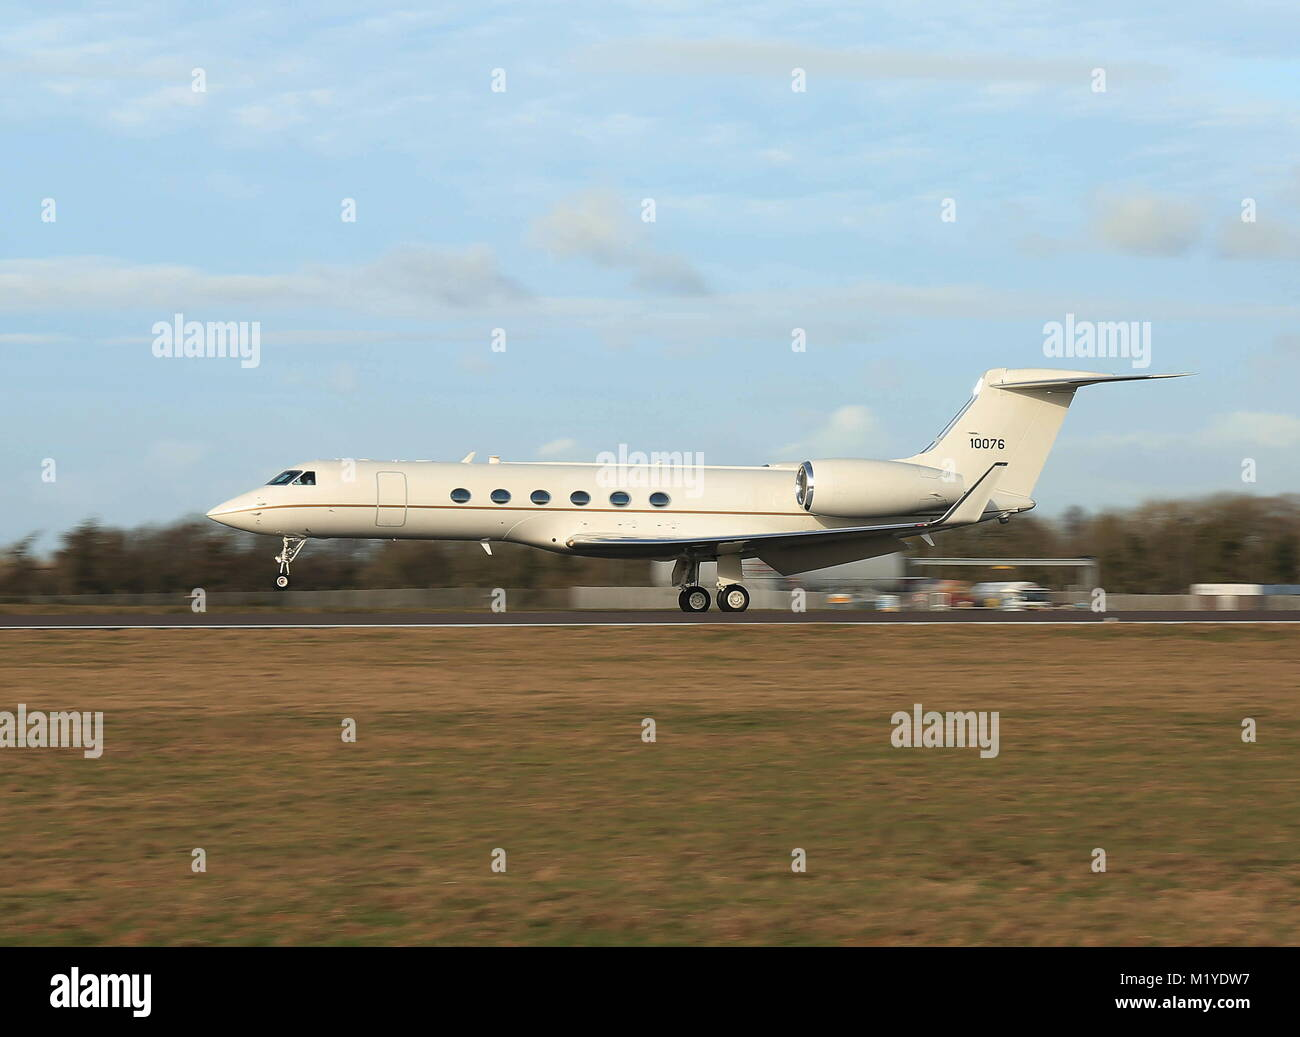 Gulf Stream Business/Private Aircraft - Stock Image